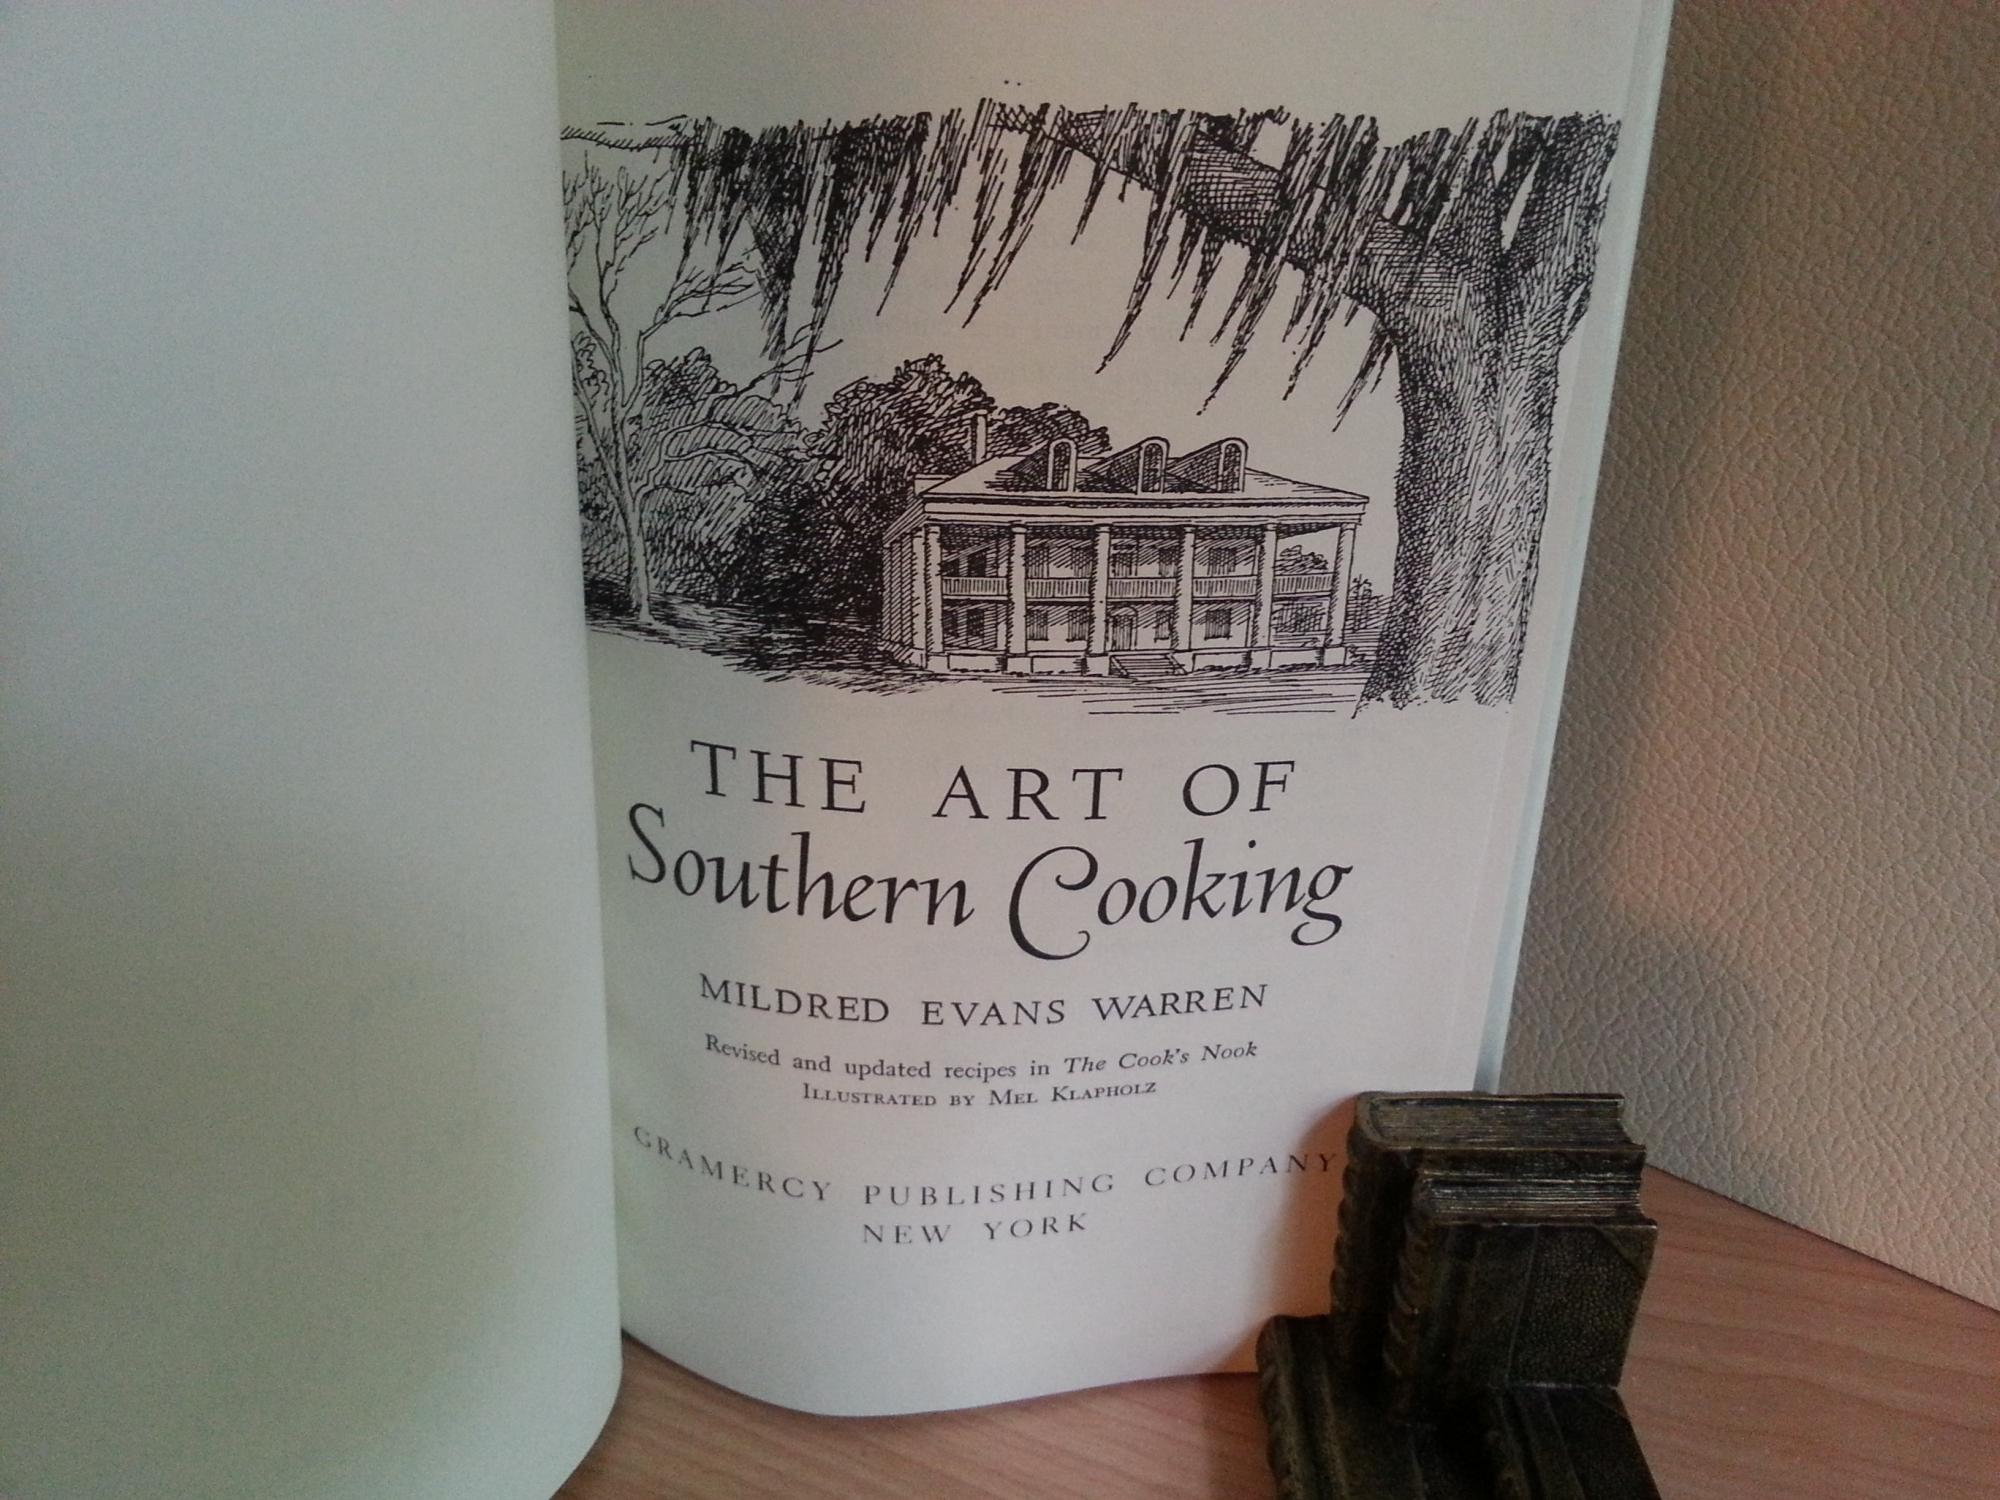 The Art of Southern Cooking: A Collection of